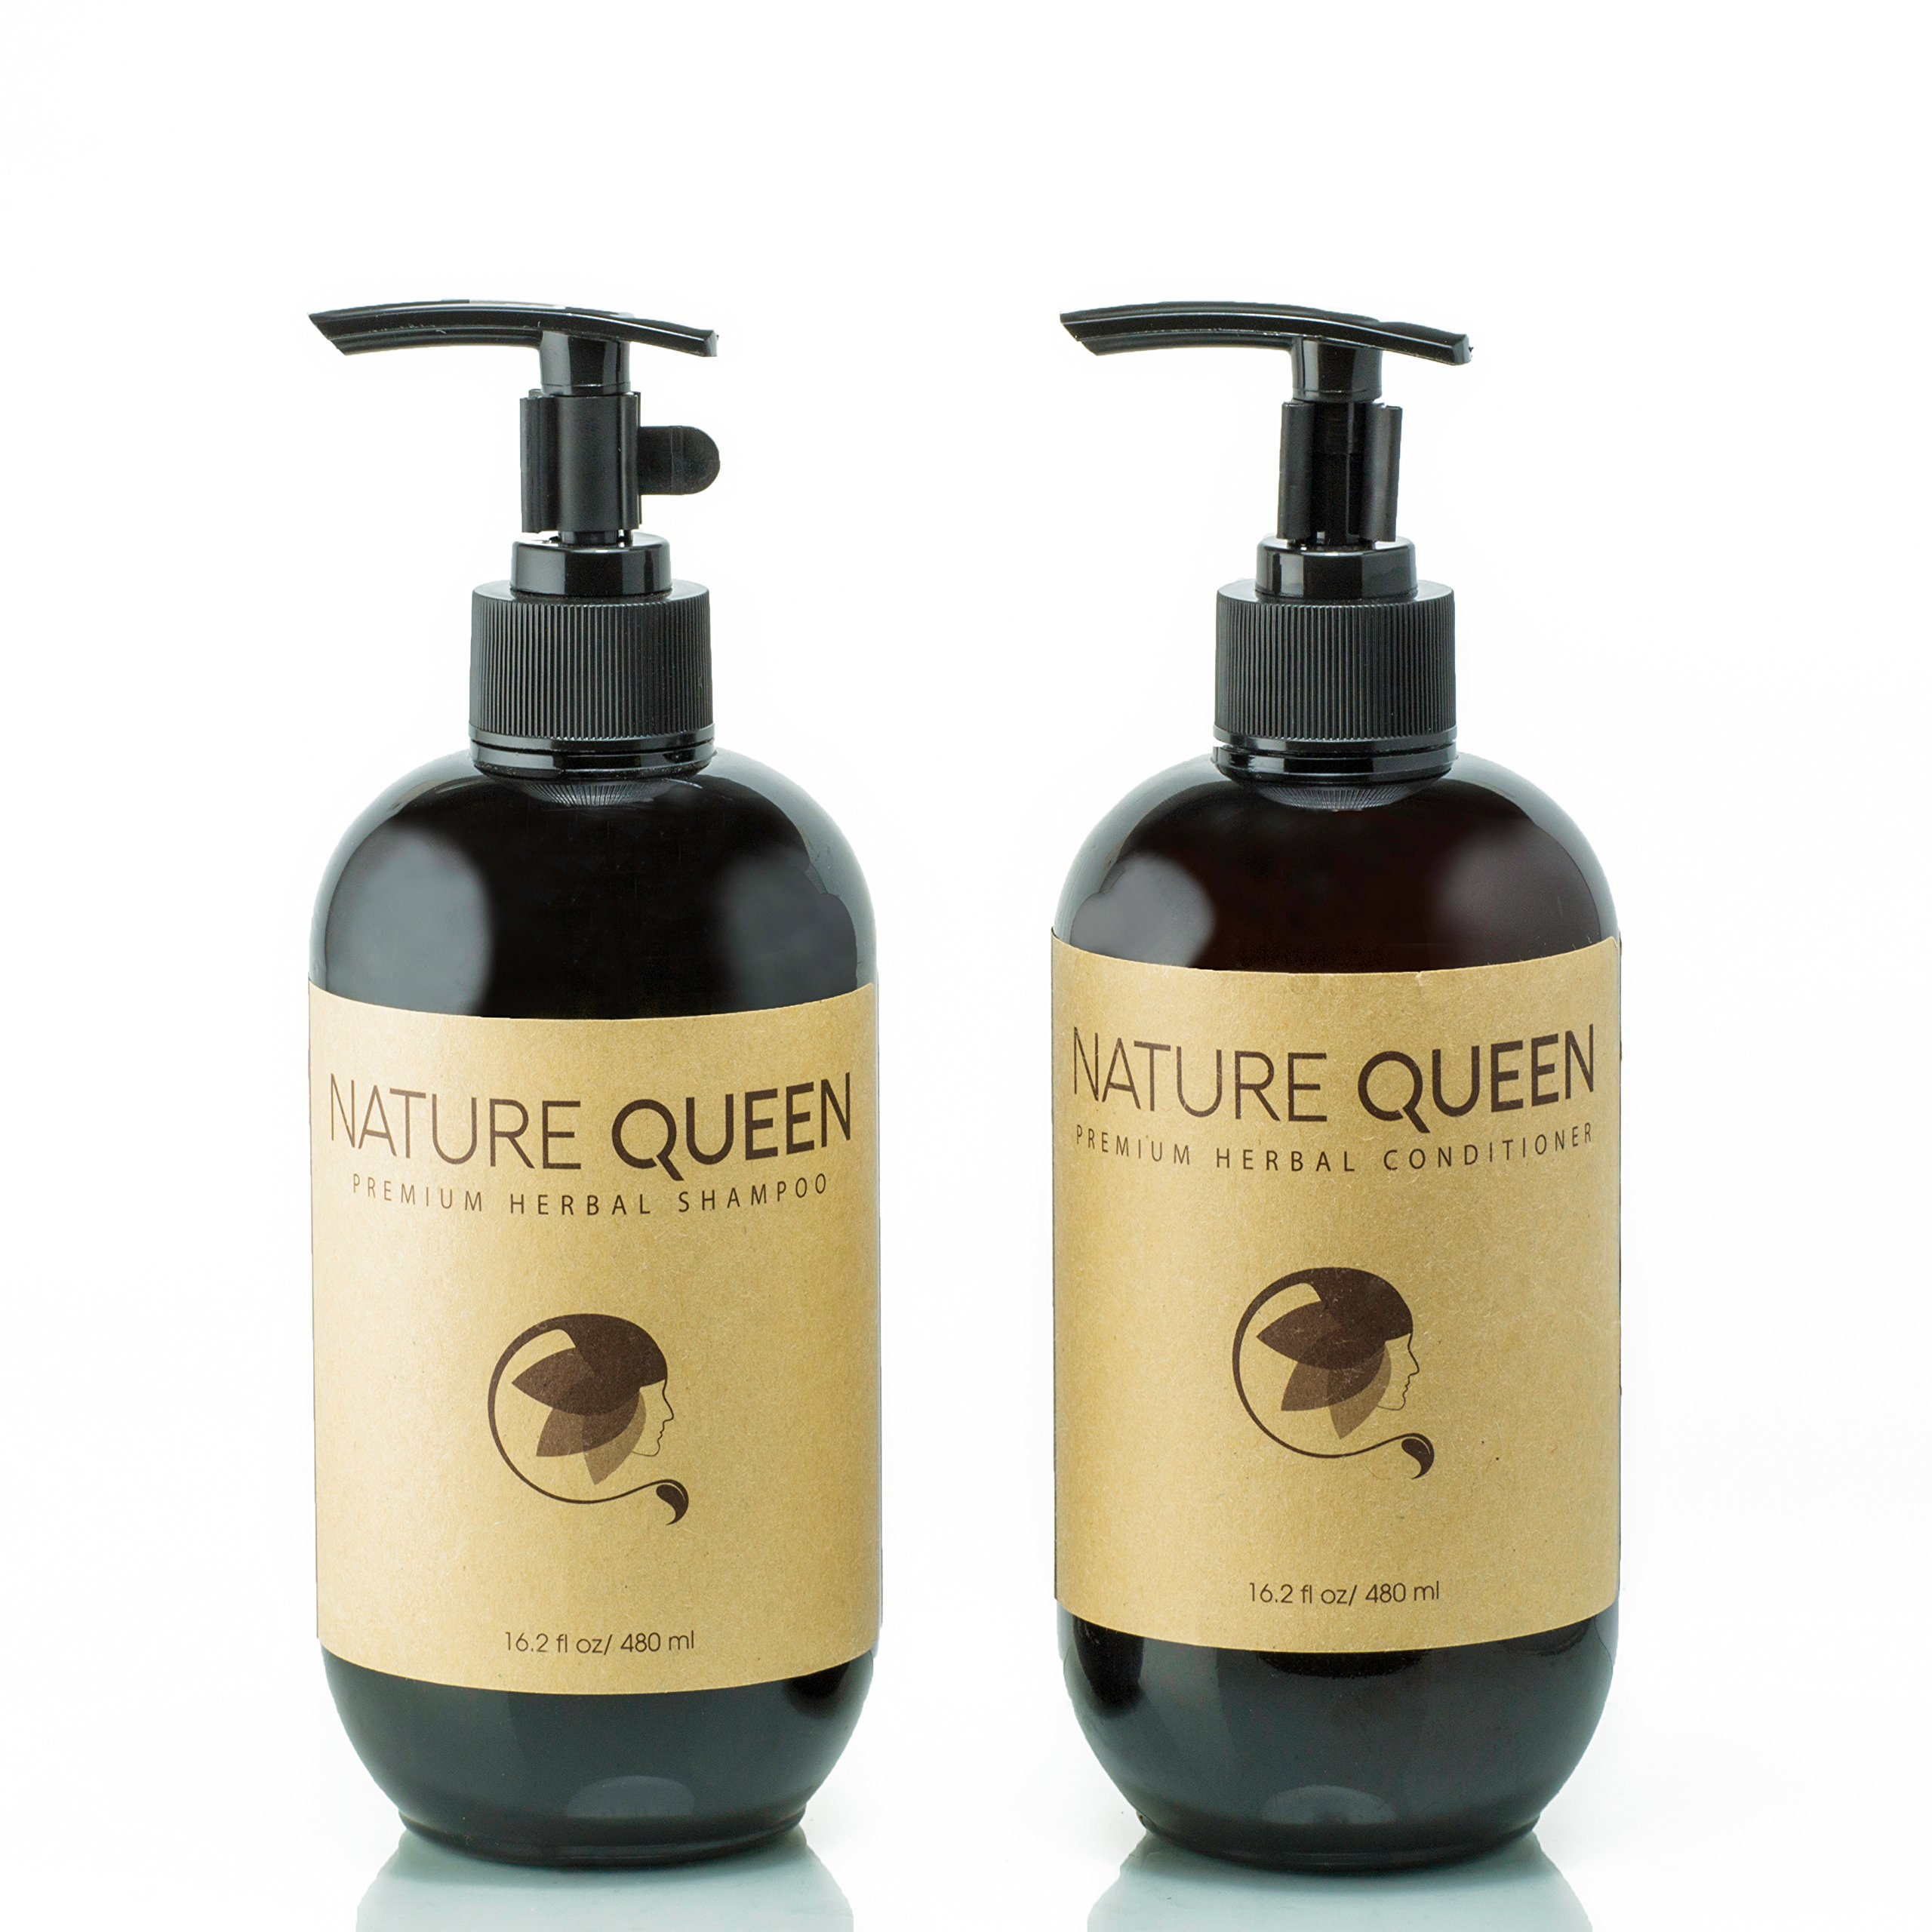 NATURE QUEEN Herbal Shampoo + Conditioner Set | Natural hair-care products that promote healthier hair growth and detoxification | Boost hair volume and get radiant shine with herbs and essential oils by NATURE QUEEN